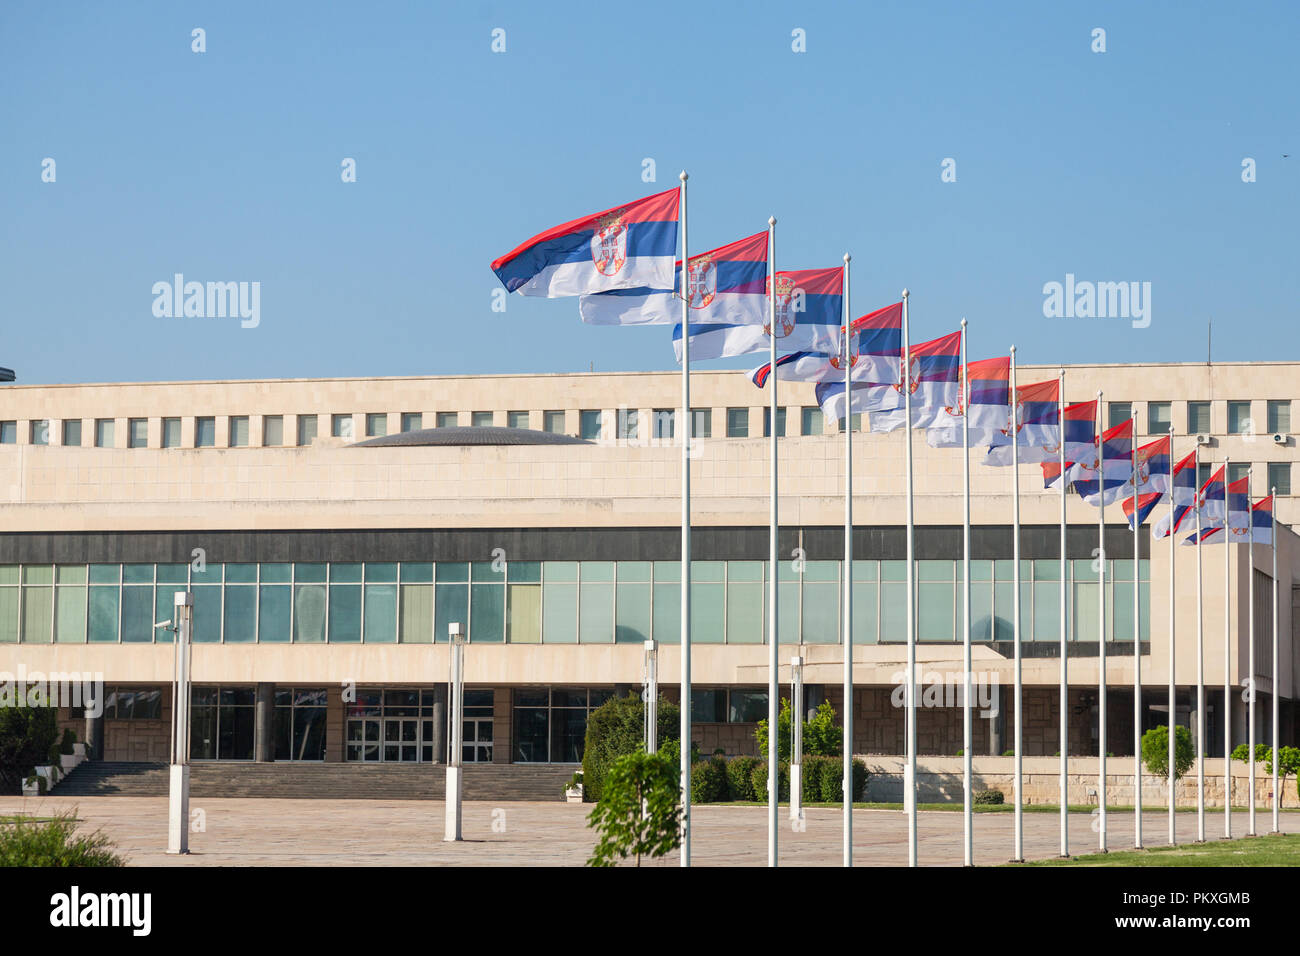 Flags of Serbia waiving in front of SIV, also known as Palata Srbija, or Palace of Serbia. It is the headquarters of the Serbian government, and the o - Stock Image